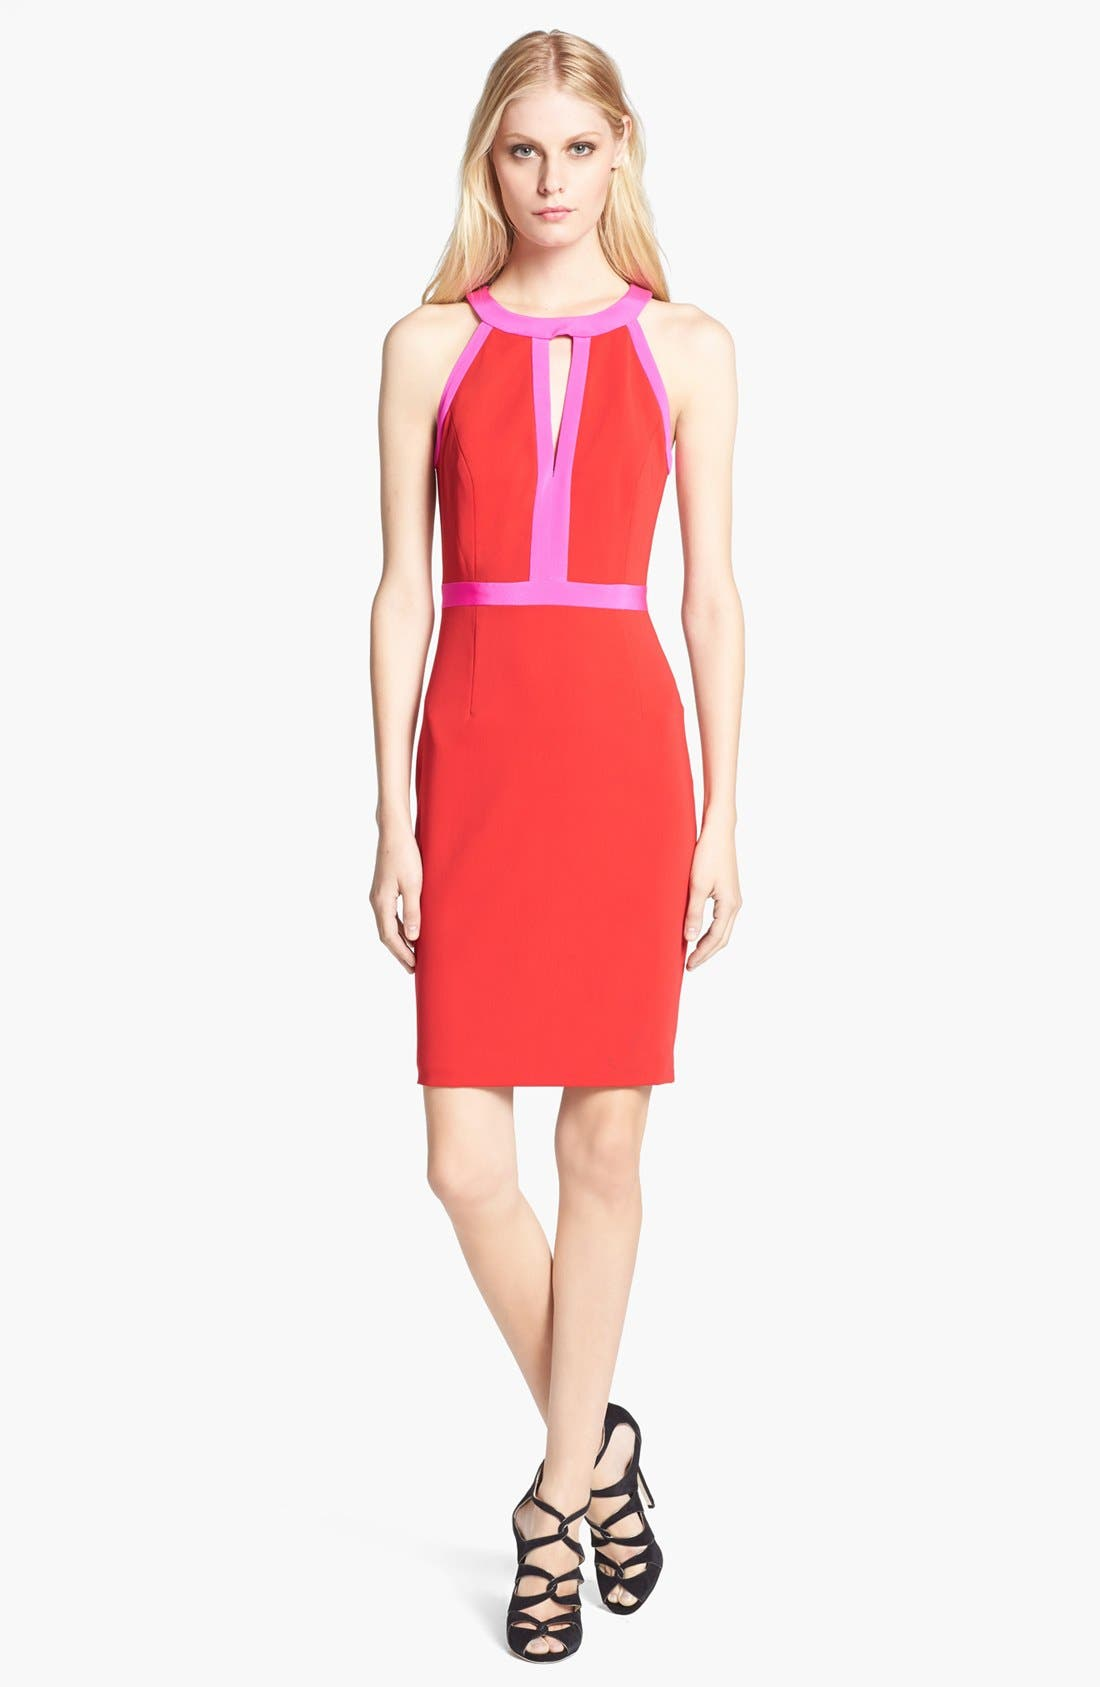 Alternate Image 1 Selected - Jay Godfrey 'Woodward' Contrast Trim Sheath Dress